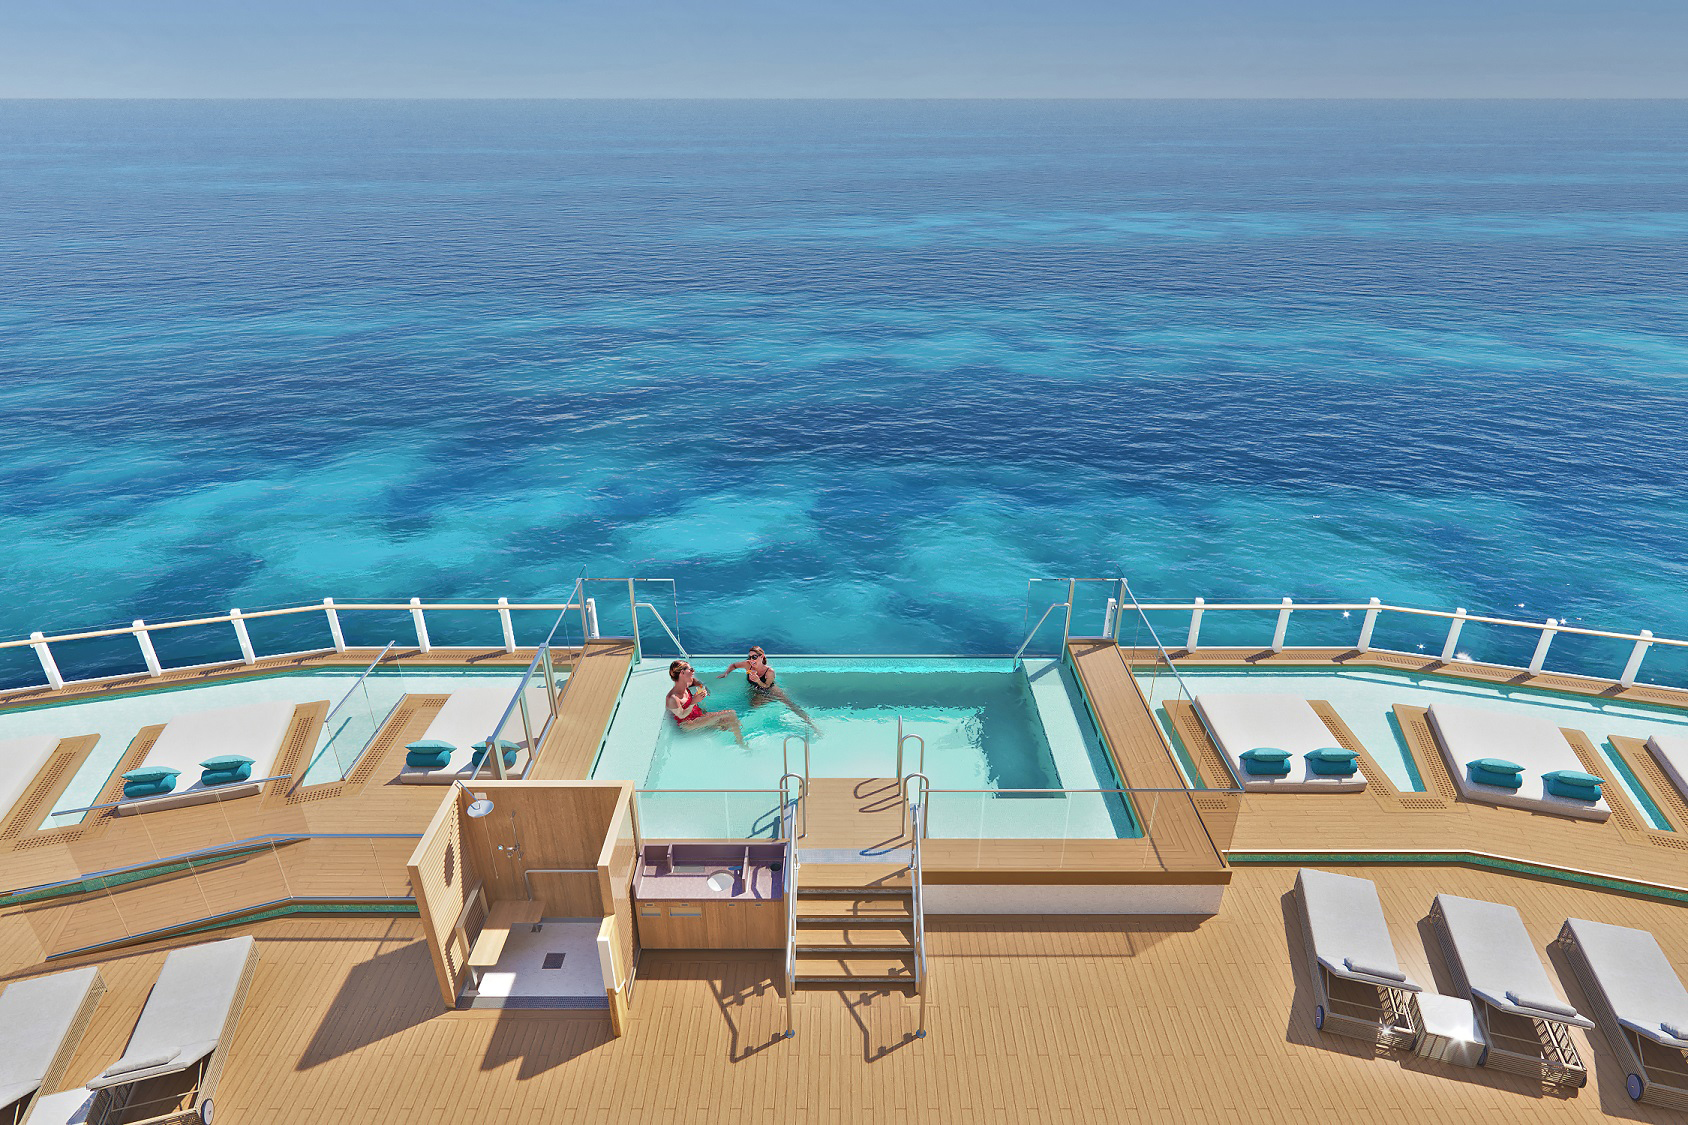 Travelers will enjoy spanning views from Norwegian Prima´s Ocean Boulevard, complete with infinity pools, dining options and a variety of experiences wrapping around the entire deck eight.